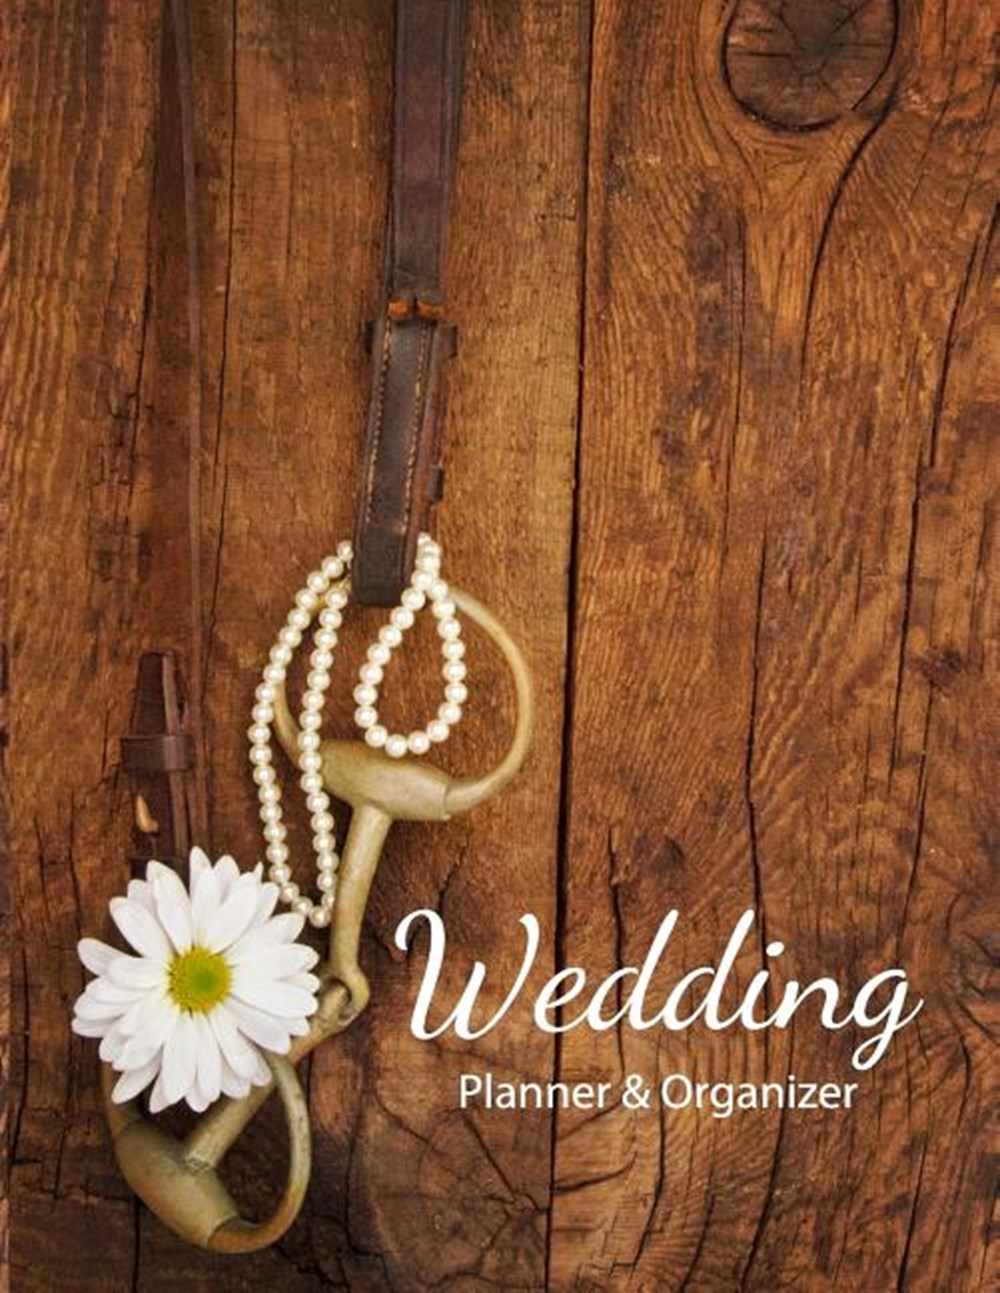 Wedding Planner & Organizer Easy to use checklists, worksheets, charts and tools - Black Bow Tie and